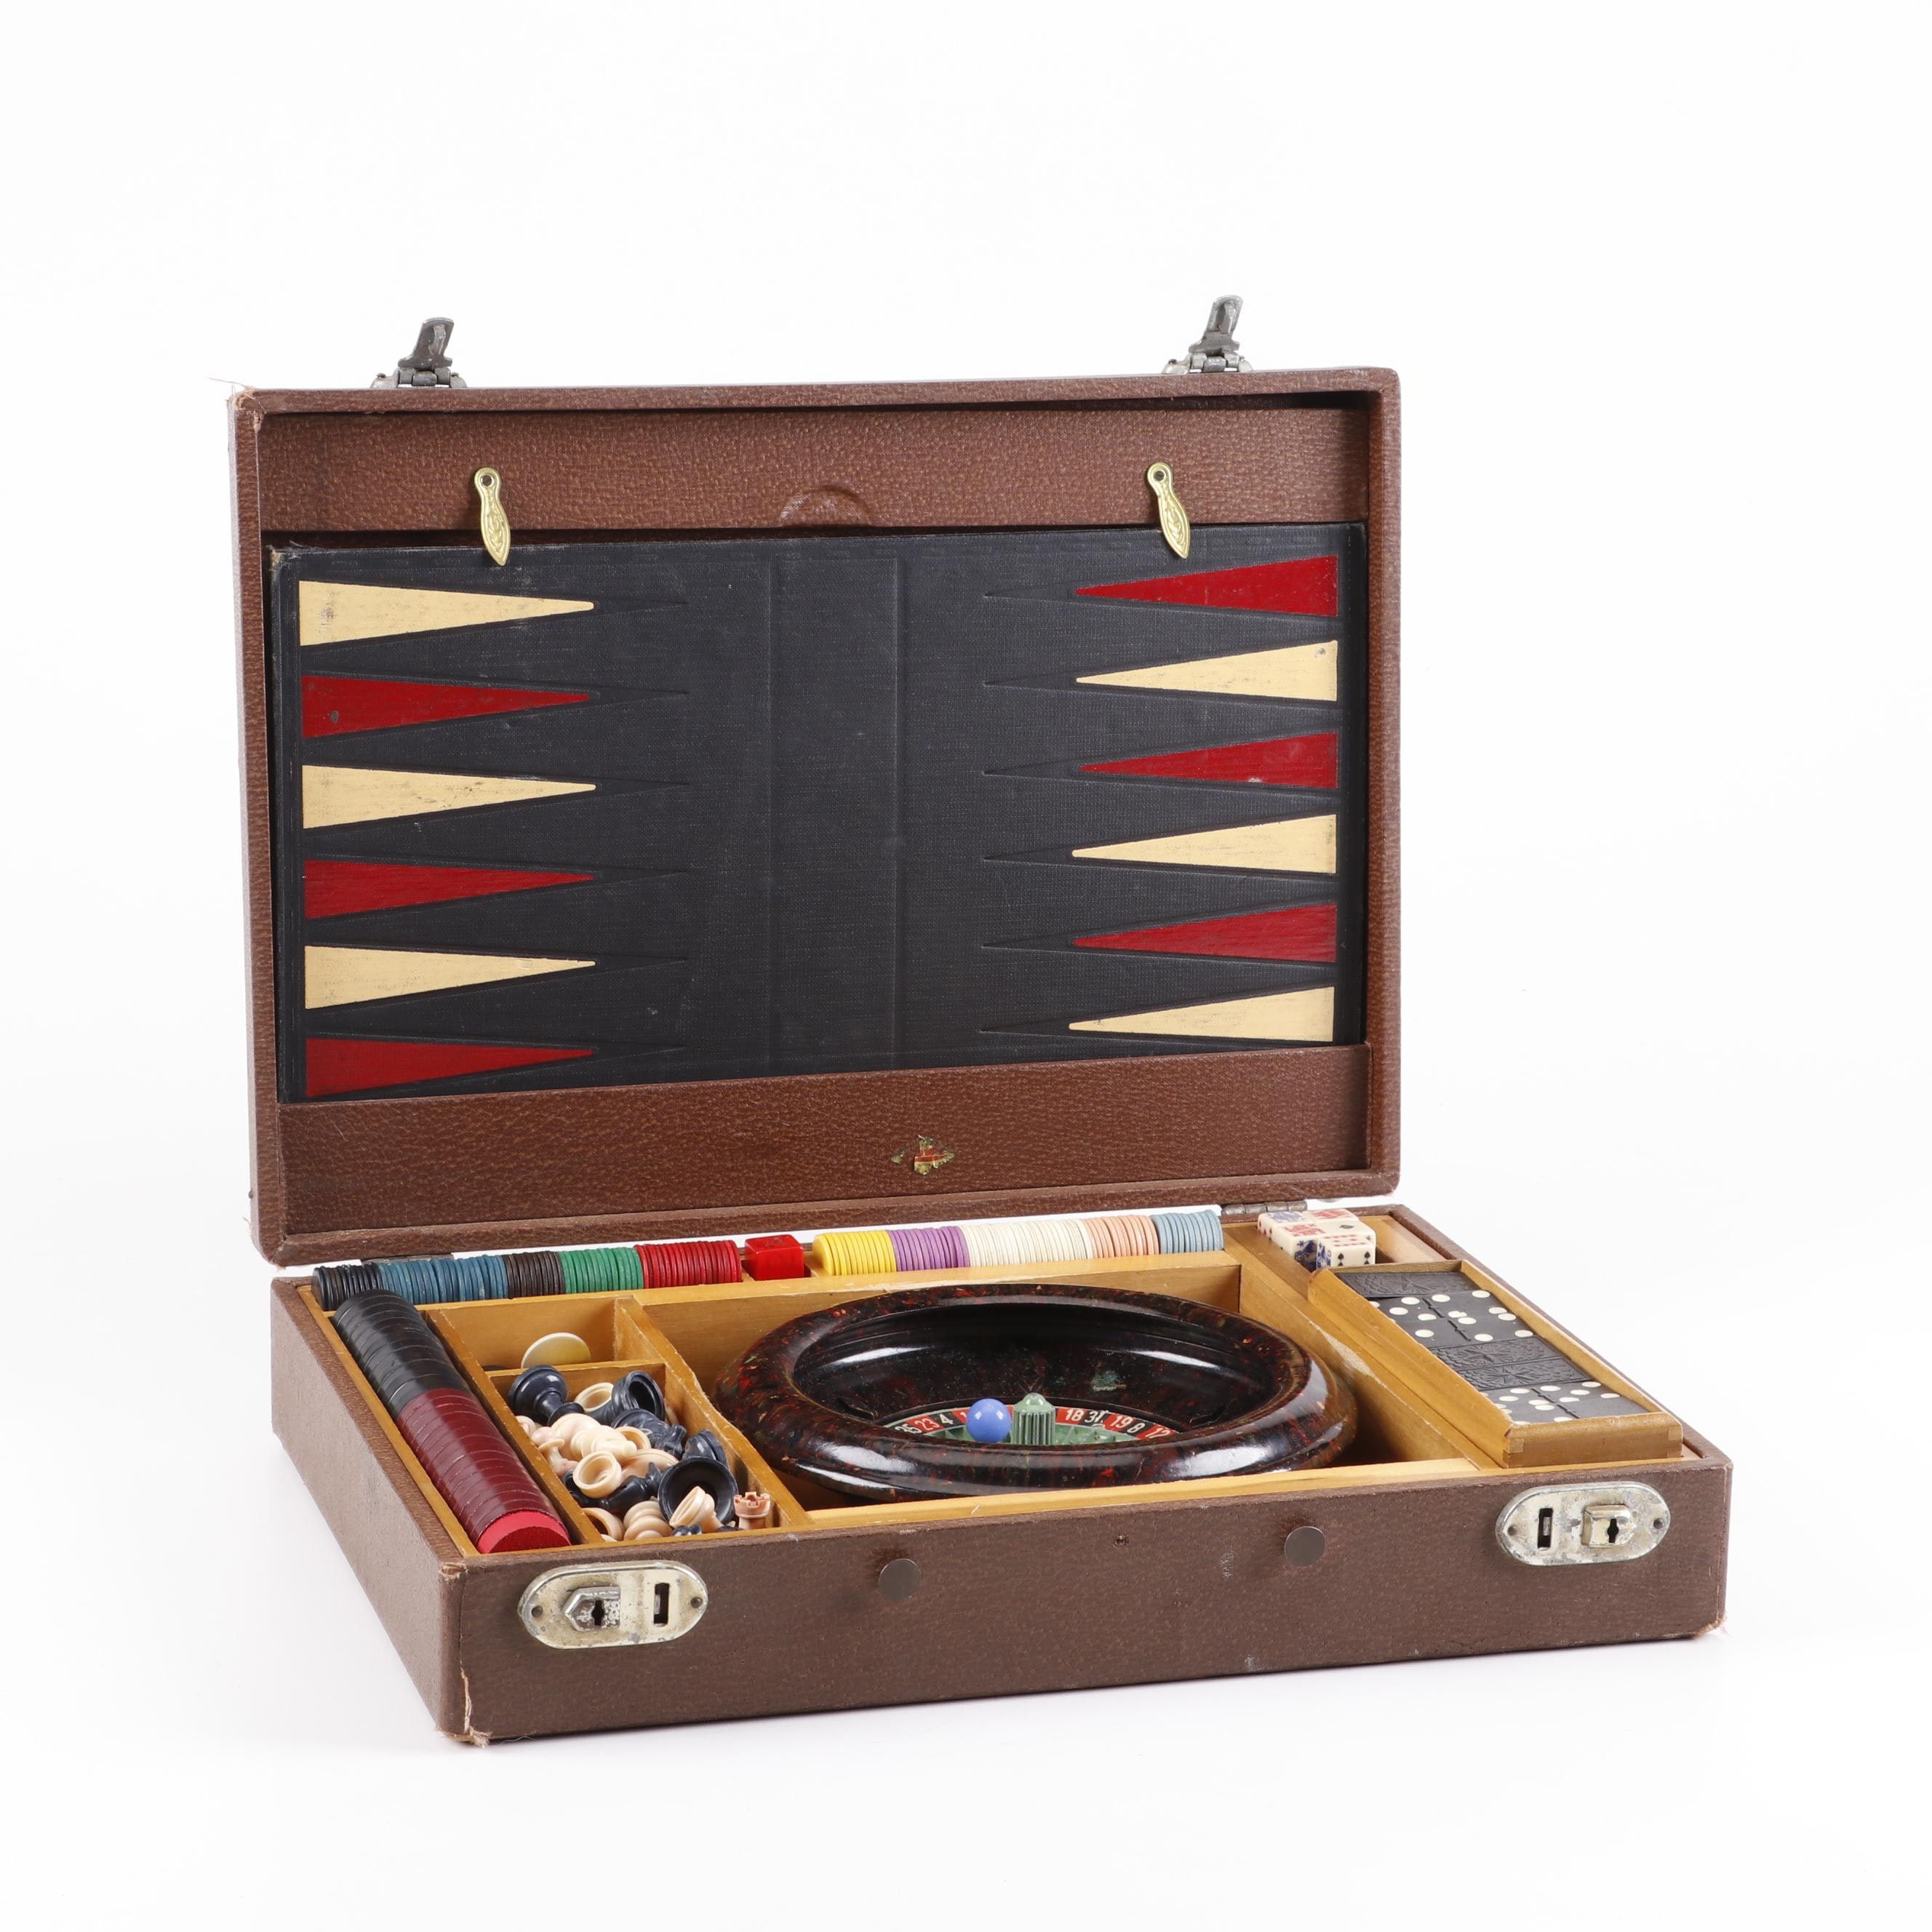 Mini Roulette, Dice, Chess Combo Vintage Gaming Set